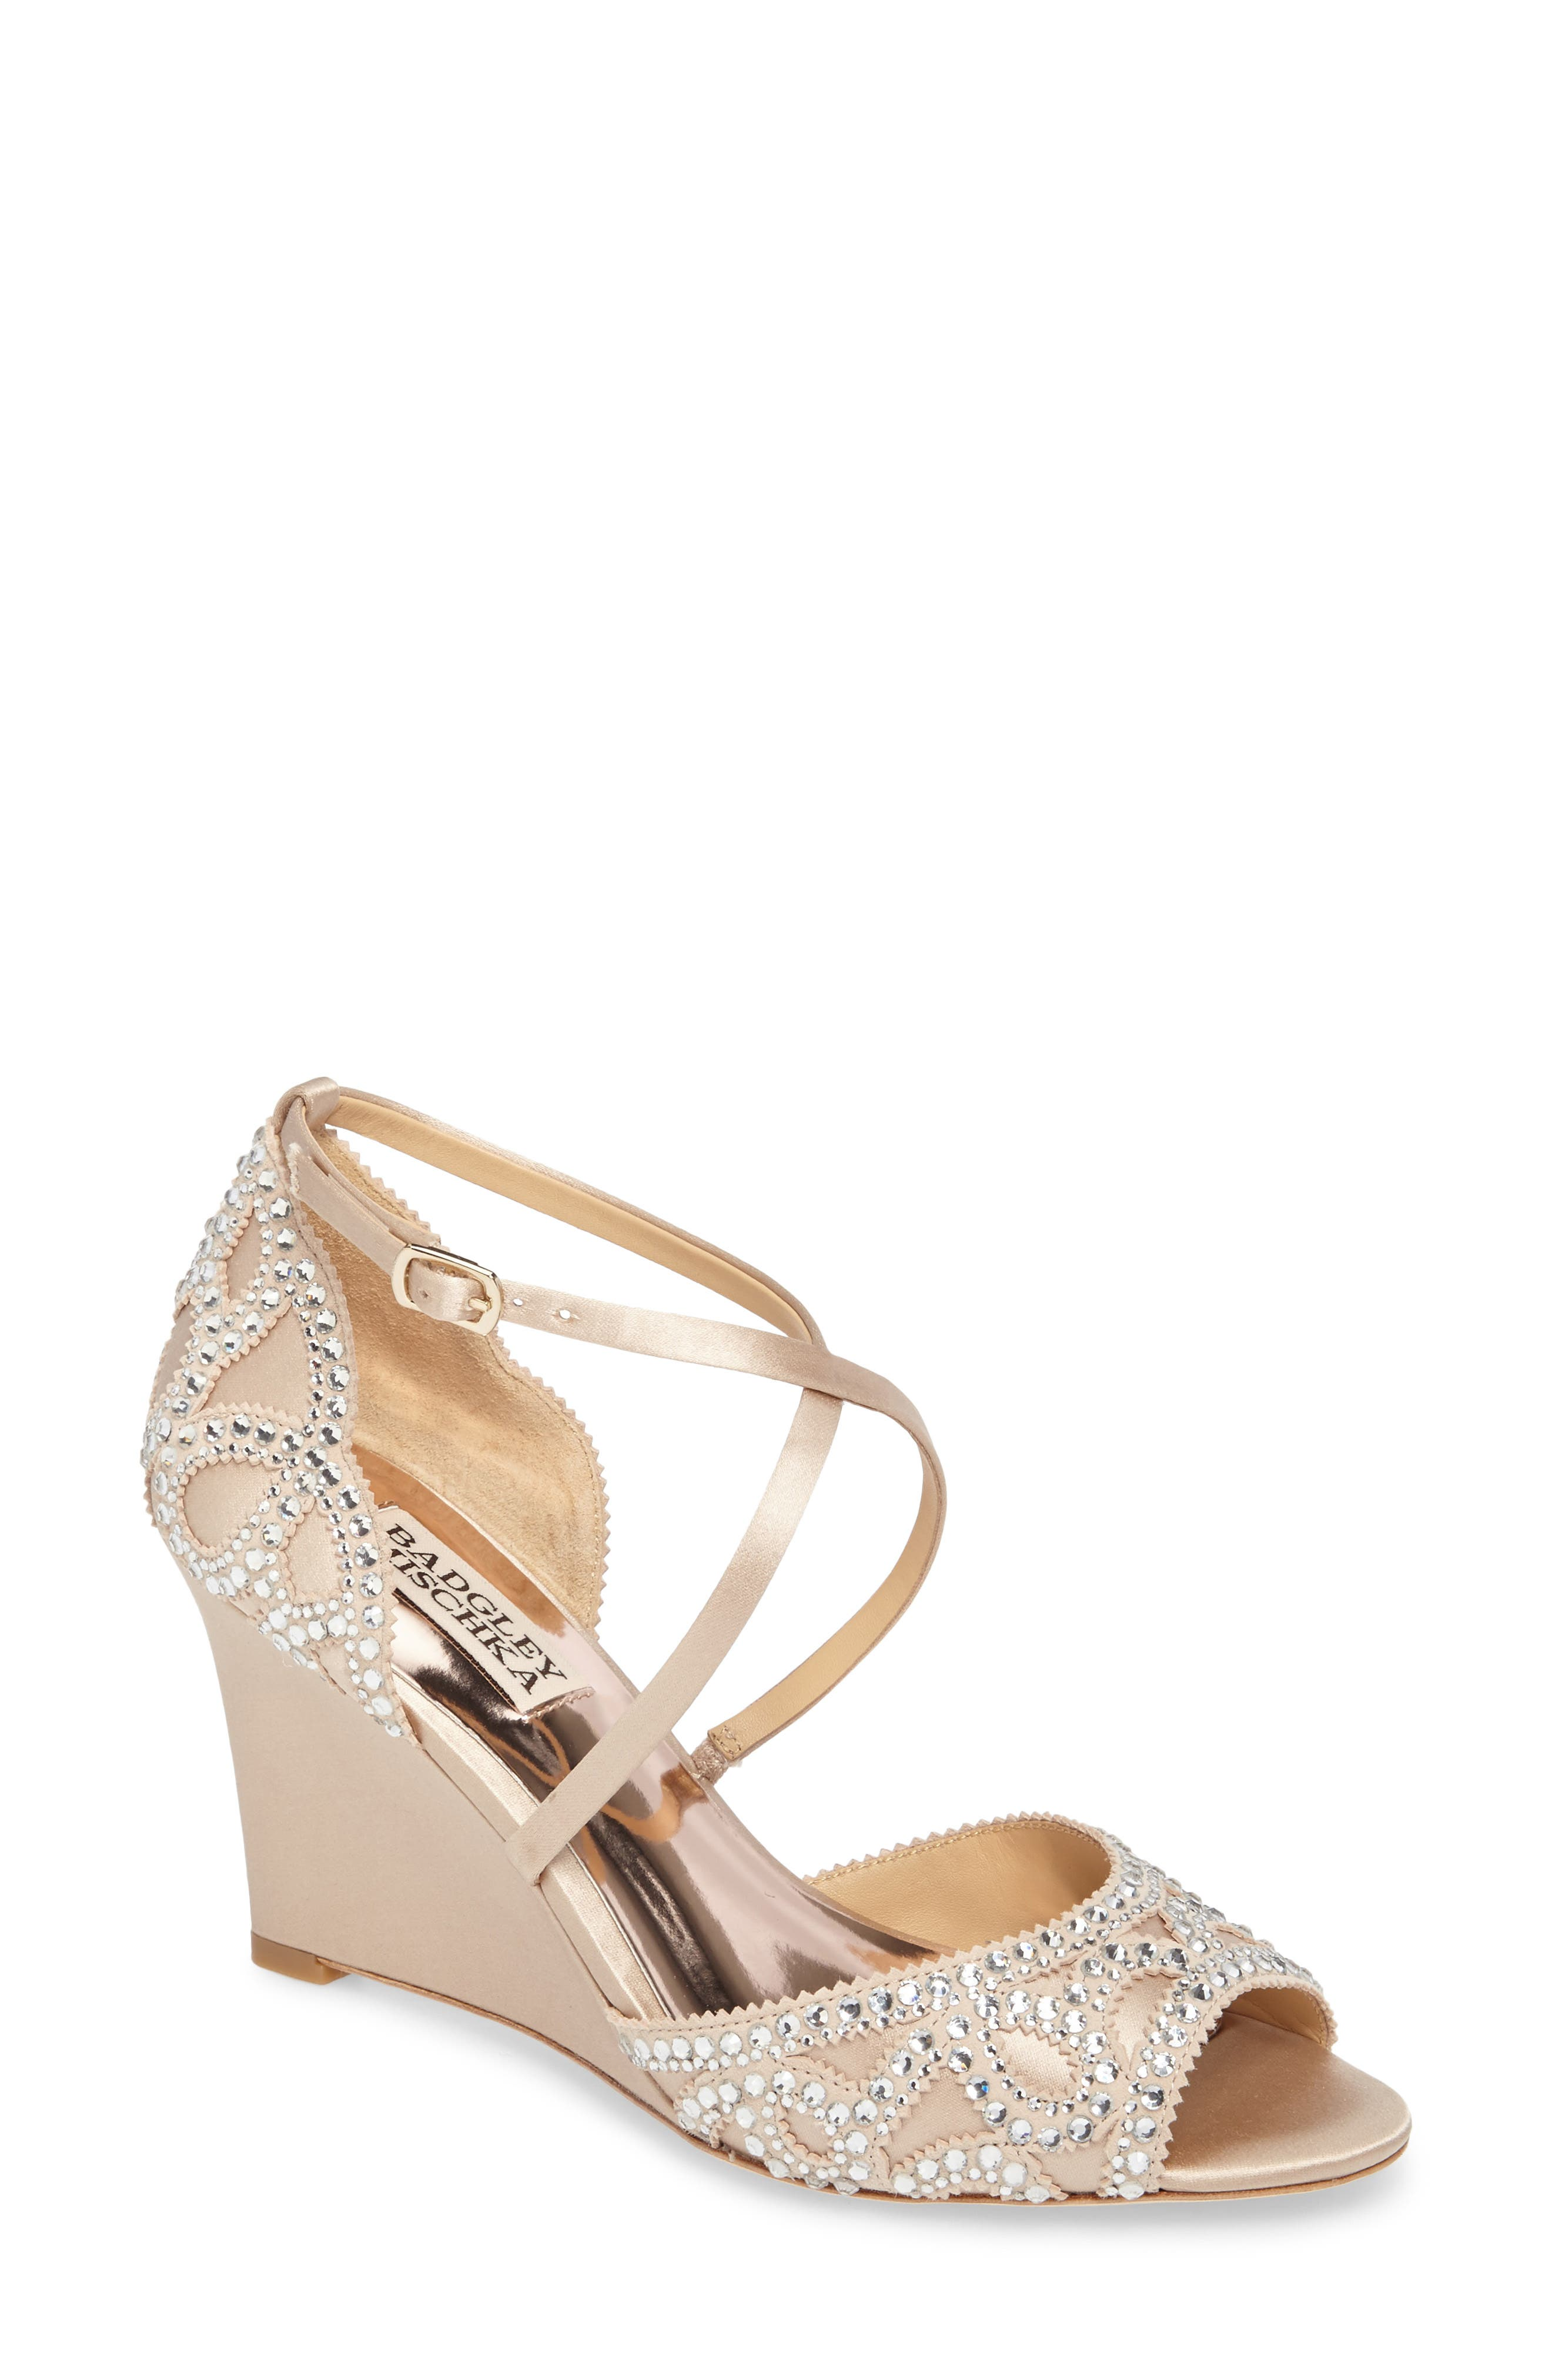 Badgley Mischka Winter Strappy Wedge Pump (Women)